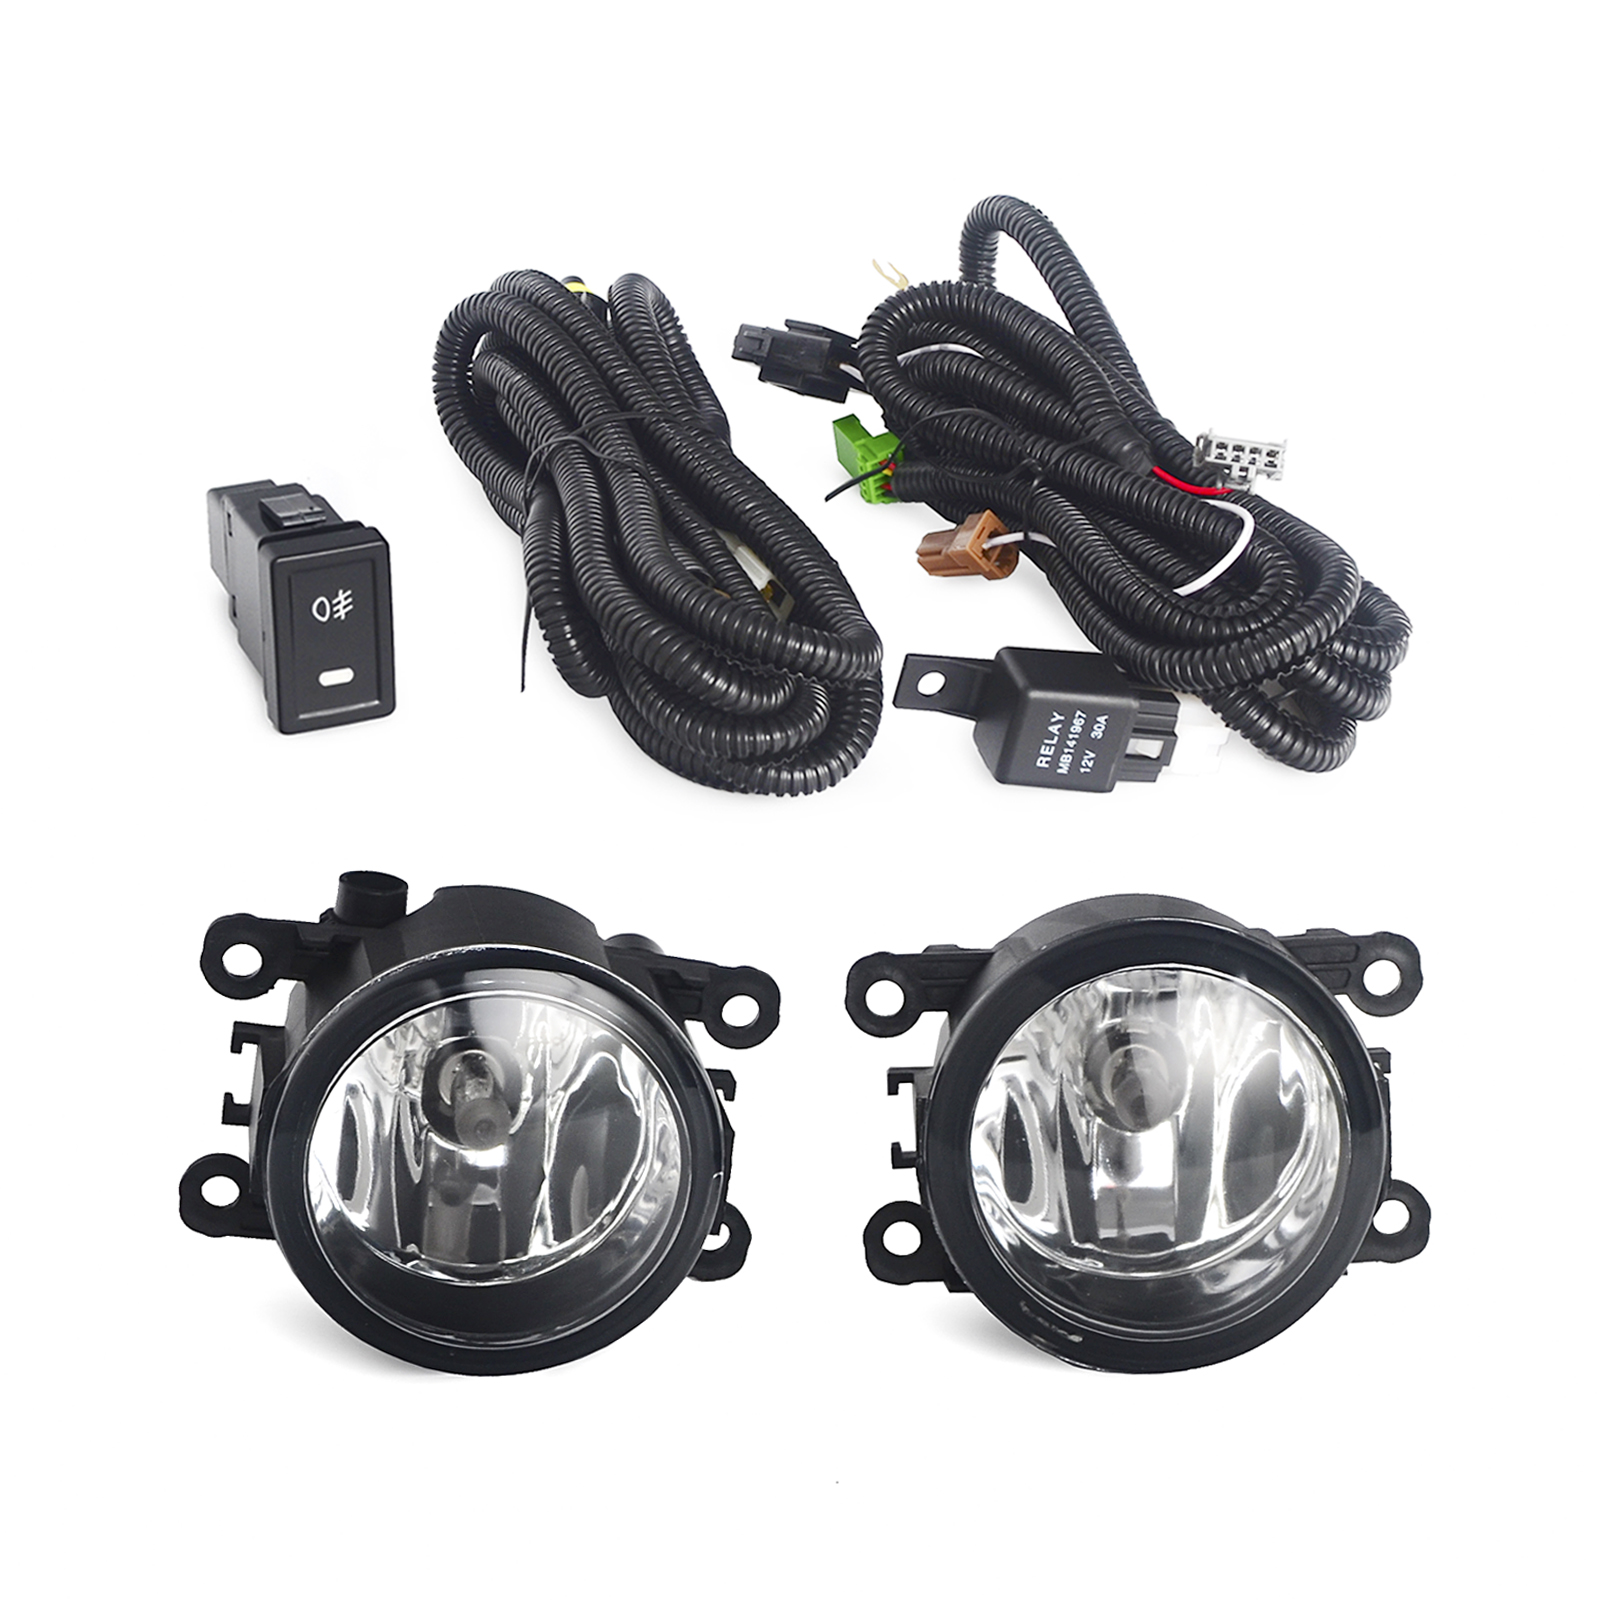 H2CNC Car Front Driving Fog Lights Lamp Assembly Switch Cable Kit For Suzuki Grand Vitara SX4